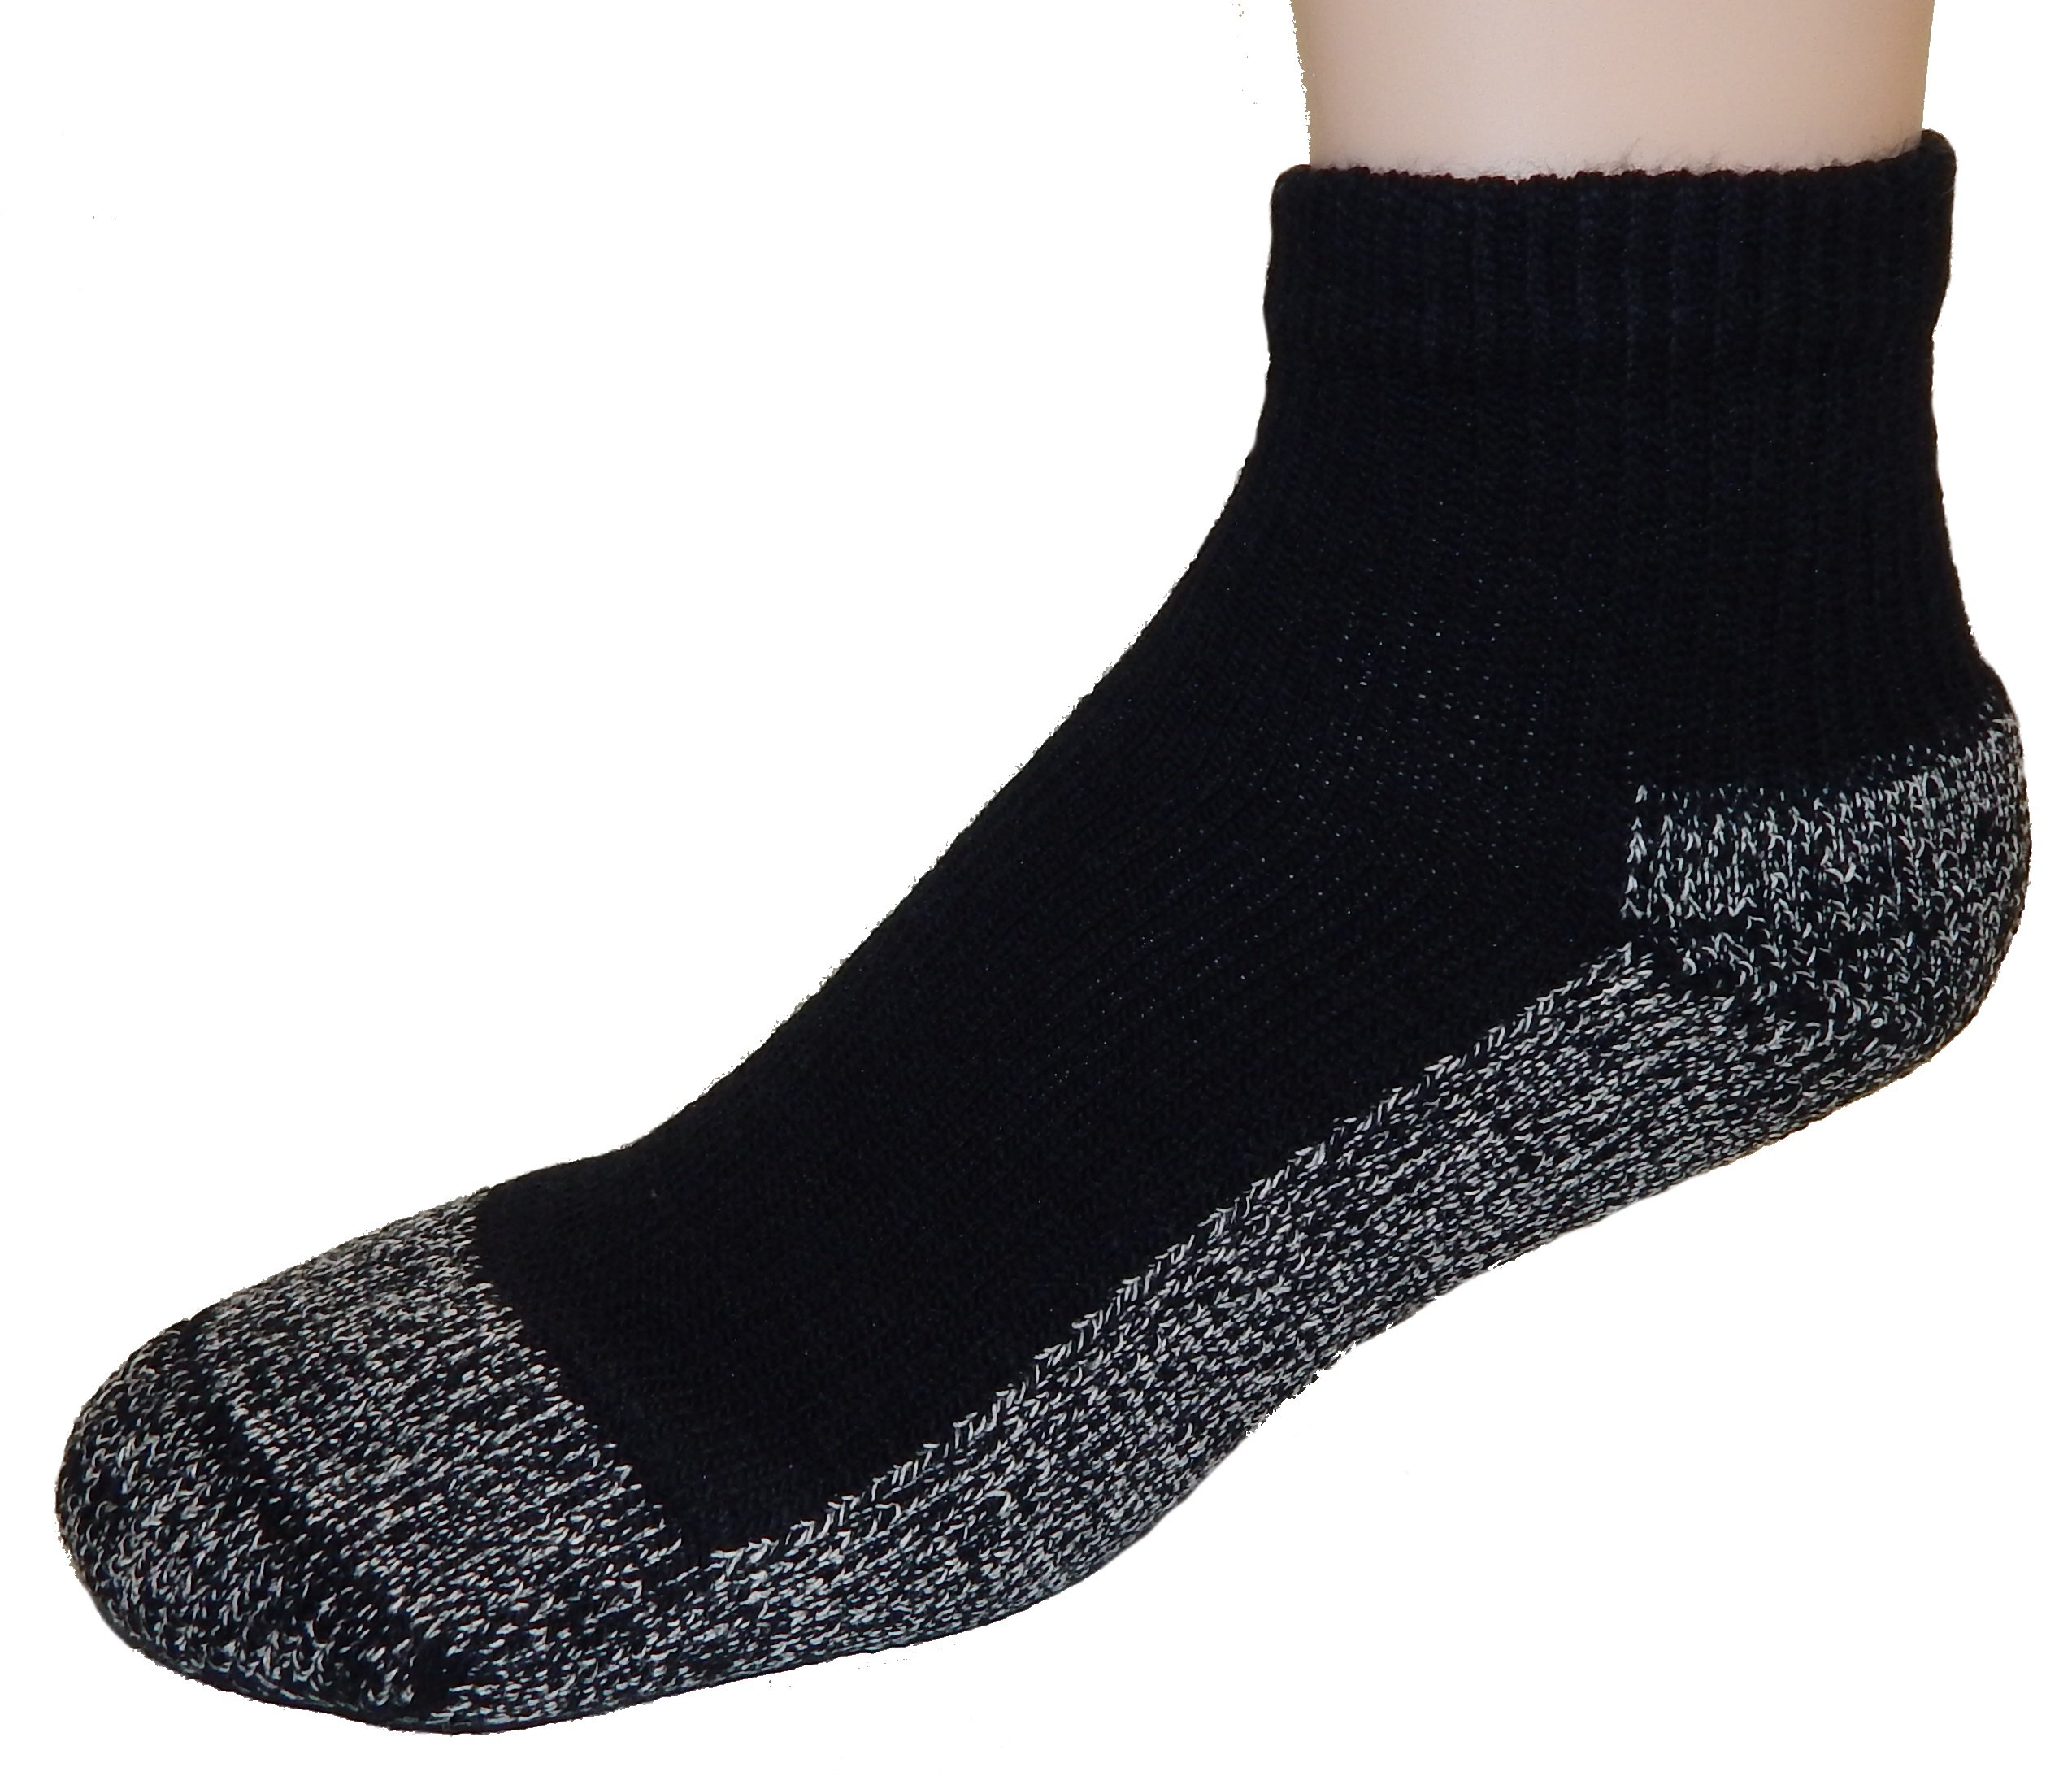 Cushees BLACK Thick Ankle Socks, 3-pack [Medium (Women or Youth large 167)] by Cushees